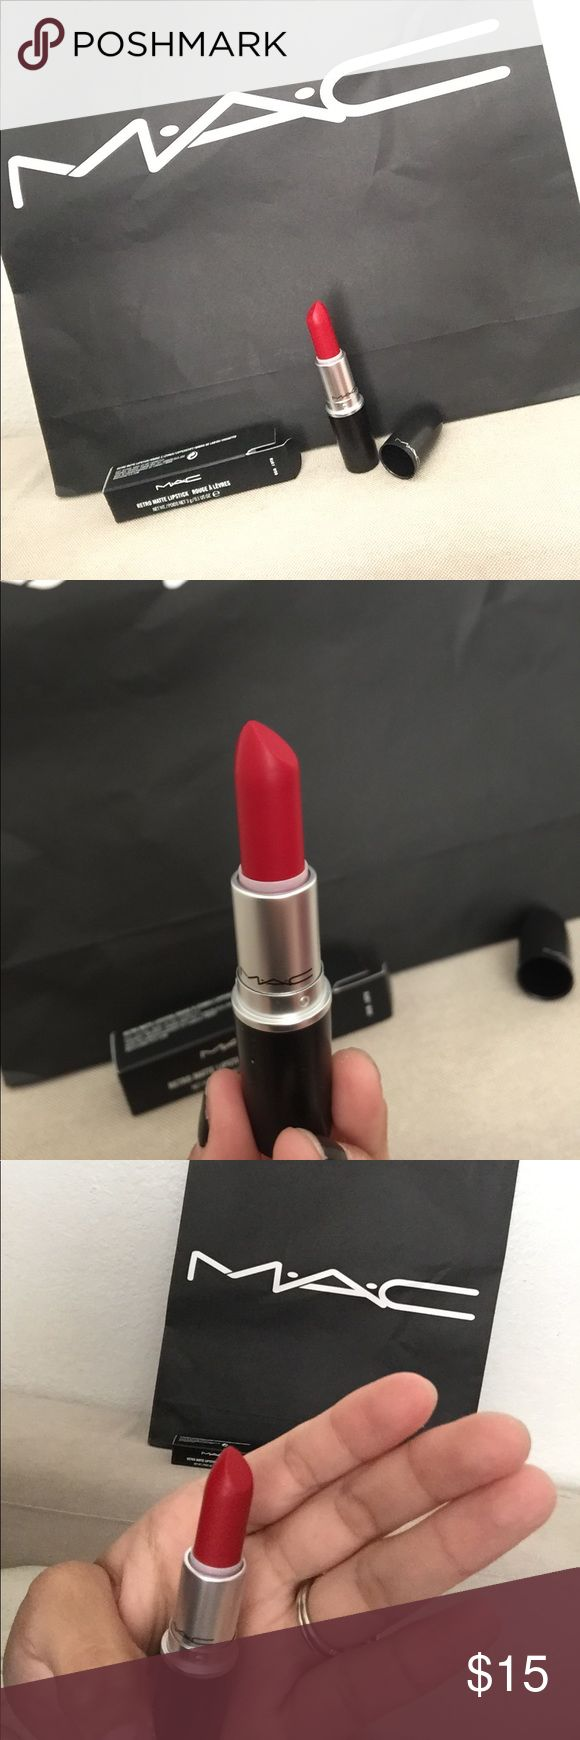 Ruby woo Mac Lipstick 💄 Brand new in box. Retro Matte Lipstick in the shade Ruby Woo. 100% authentic from the Mac store. MAC Cosmetics Makeup Lipstick